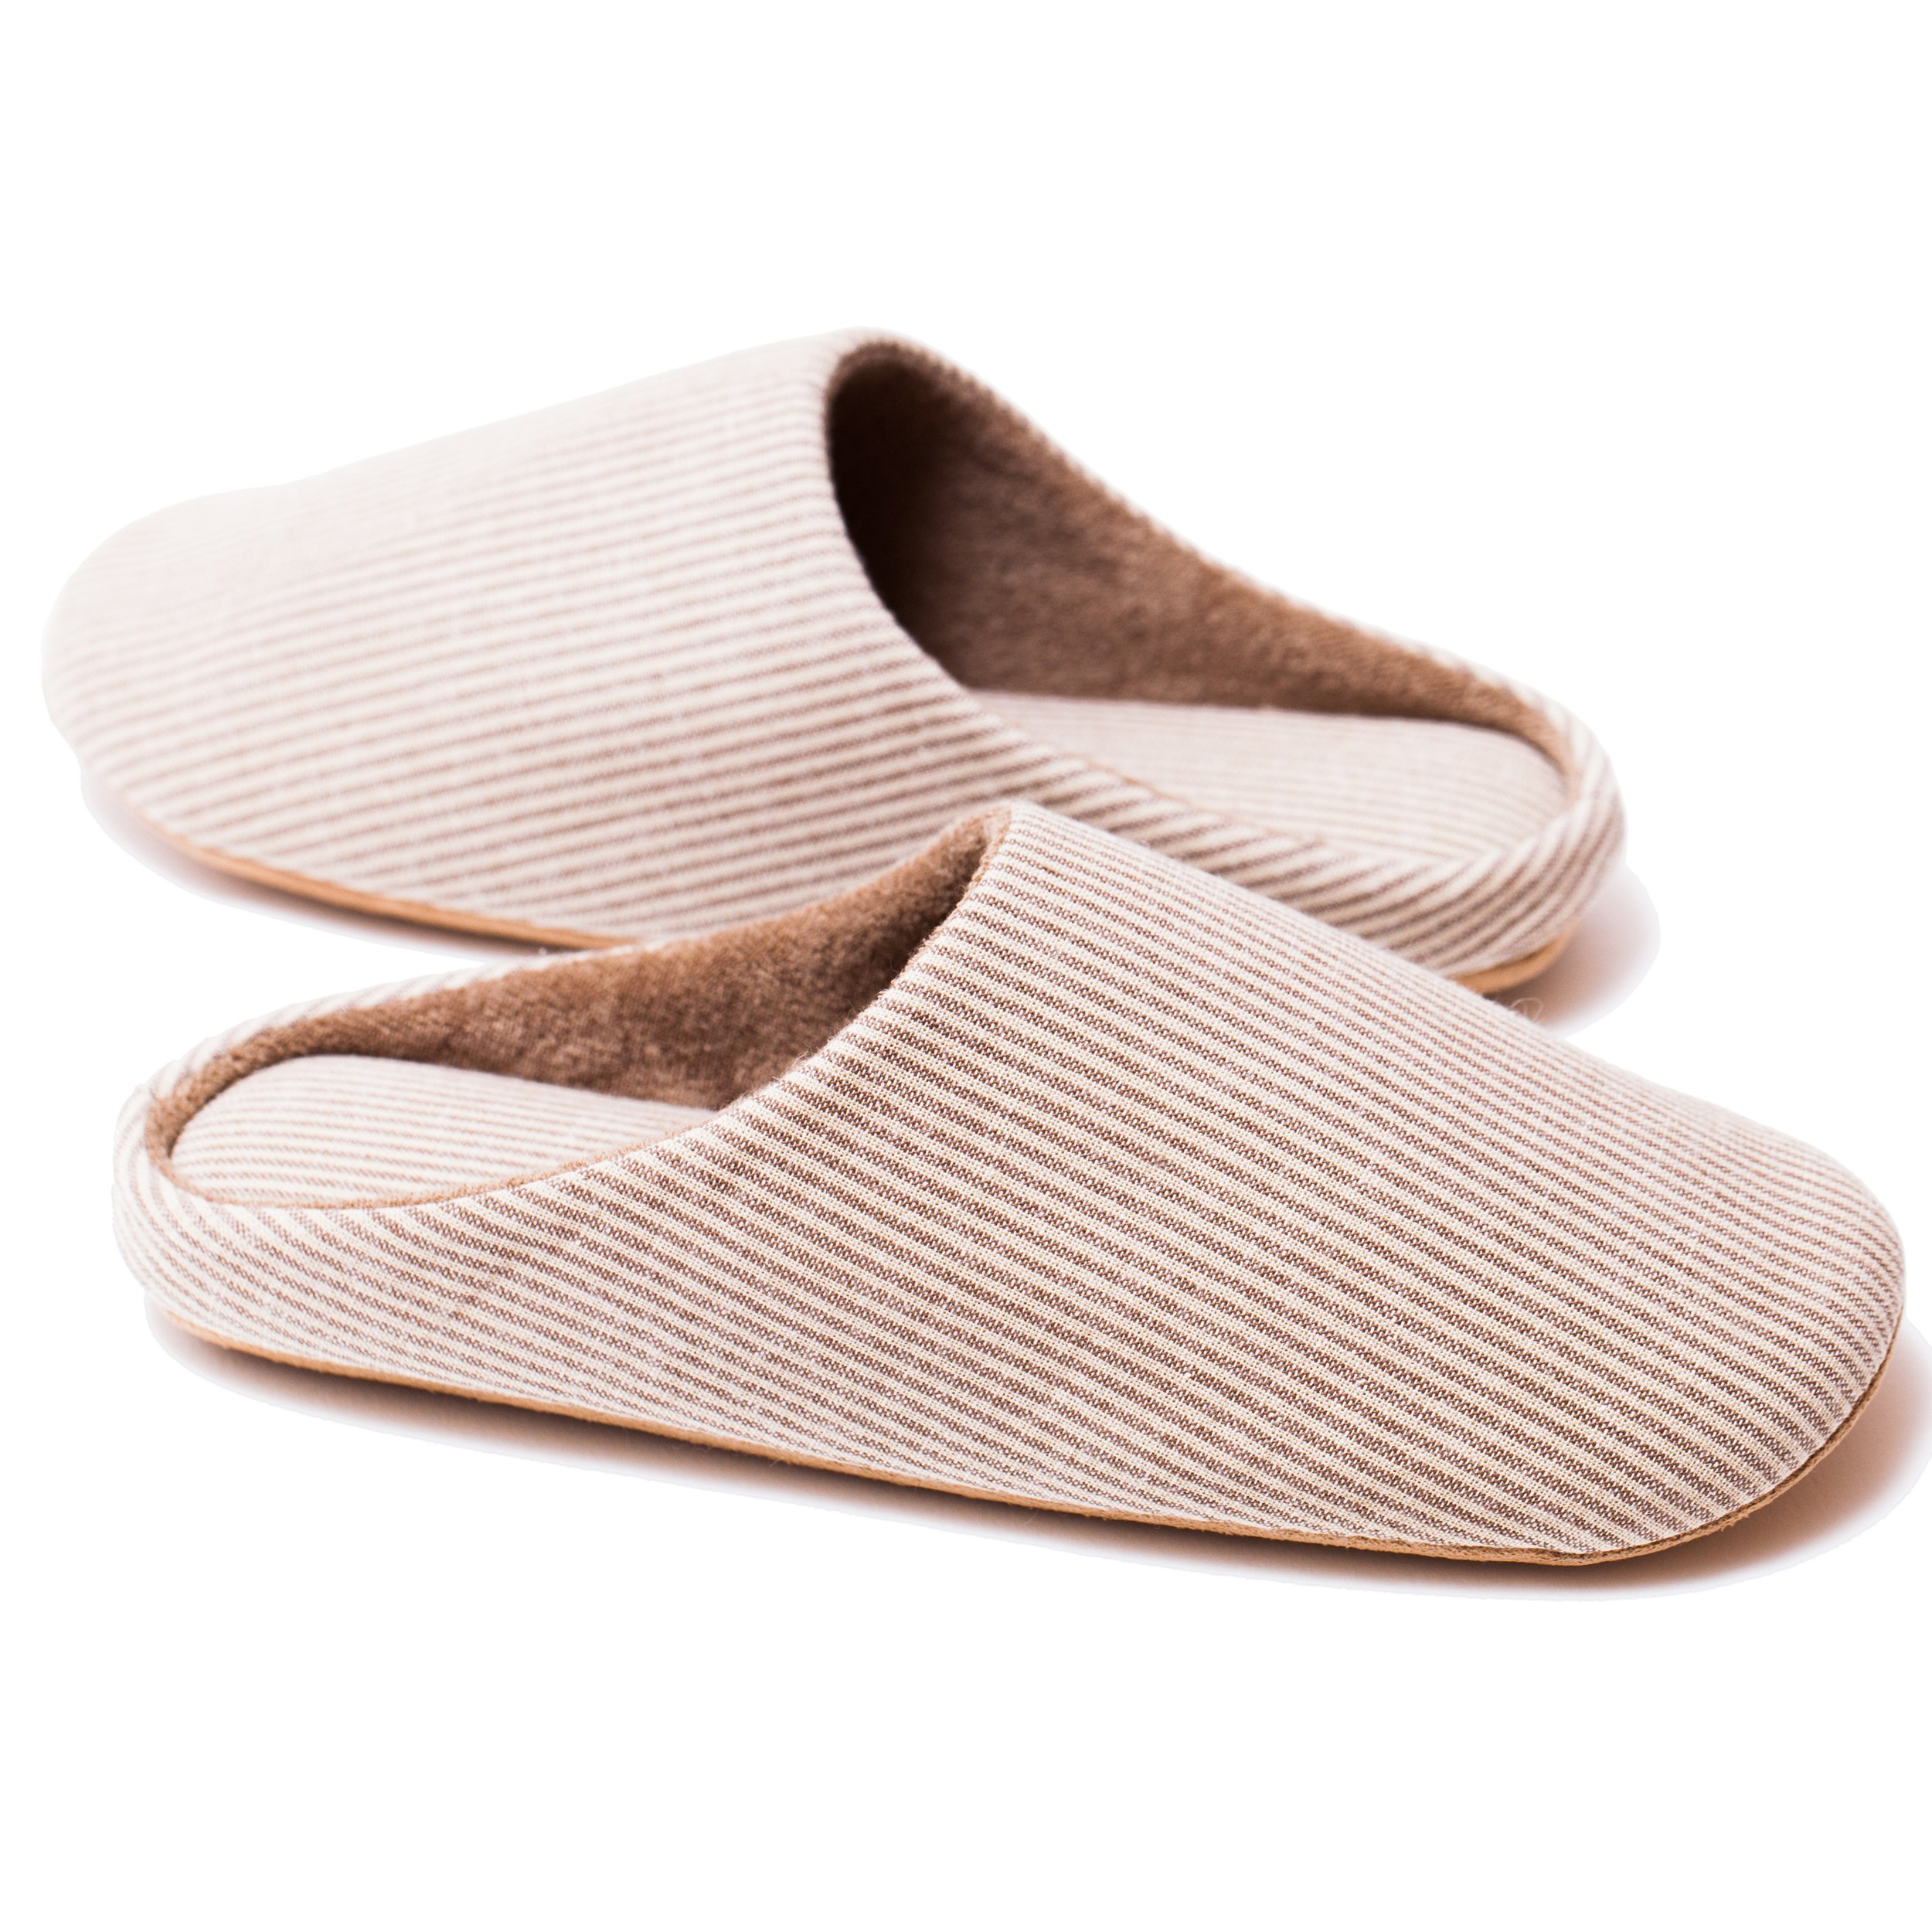 RelaxedFoot Slippers | Organic Cotton & Memory Foam | 1 Pair with Storage Bag (Large, Coffee)